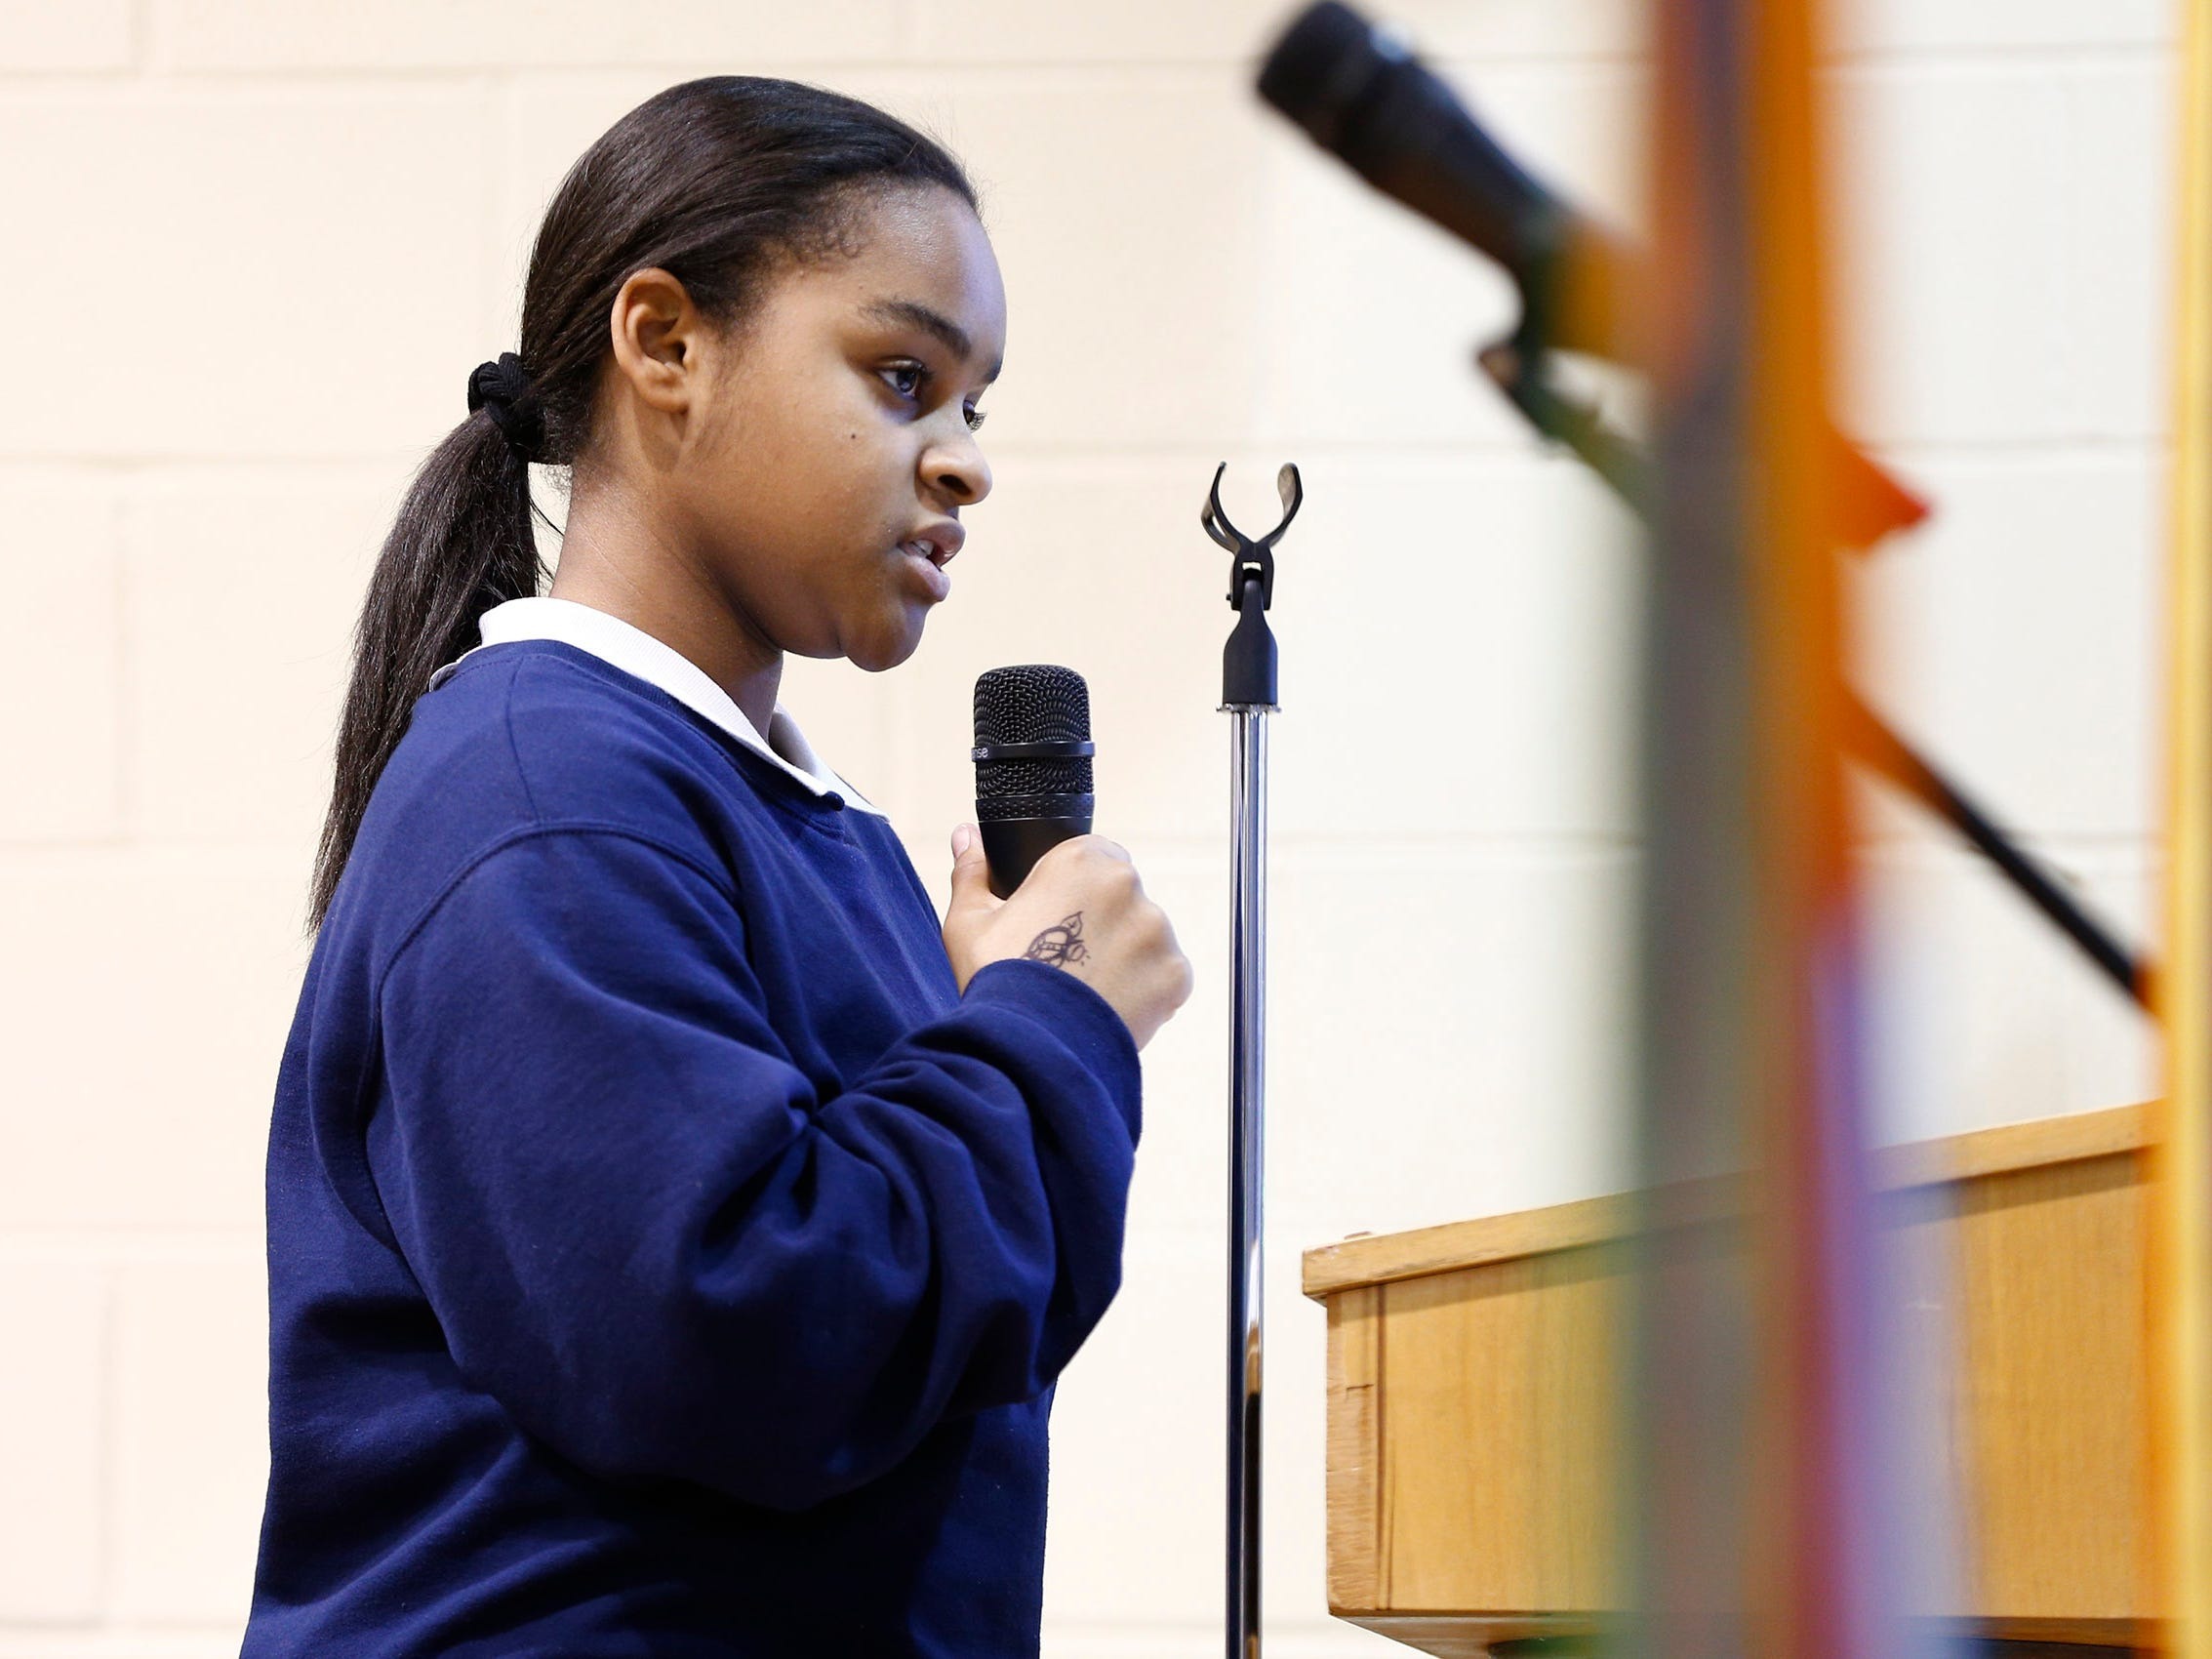 Sisters Academy 7th grader Mikayla Redway performs her persuasive essay during the 8th Annual Miller Speaking Contest at the Asbury Park school Thursday, March 14, 2019.